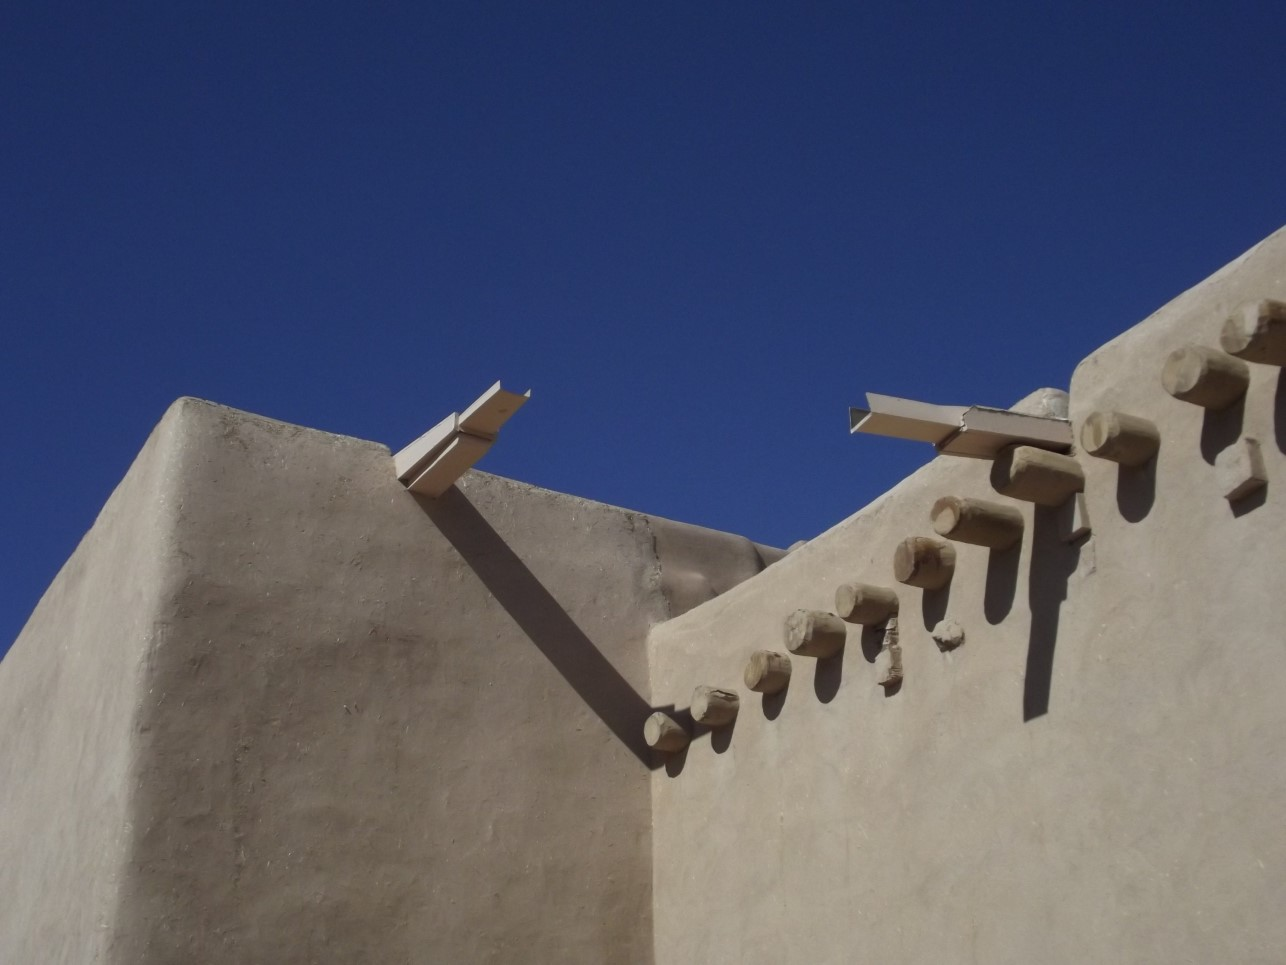 Roof beams sticking out of an adobe building